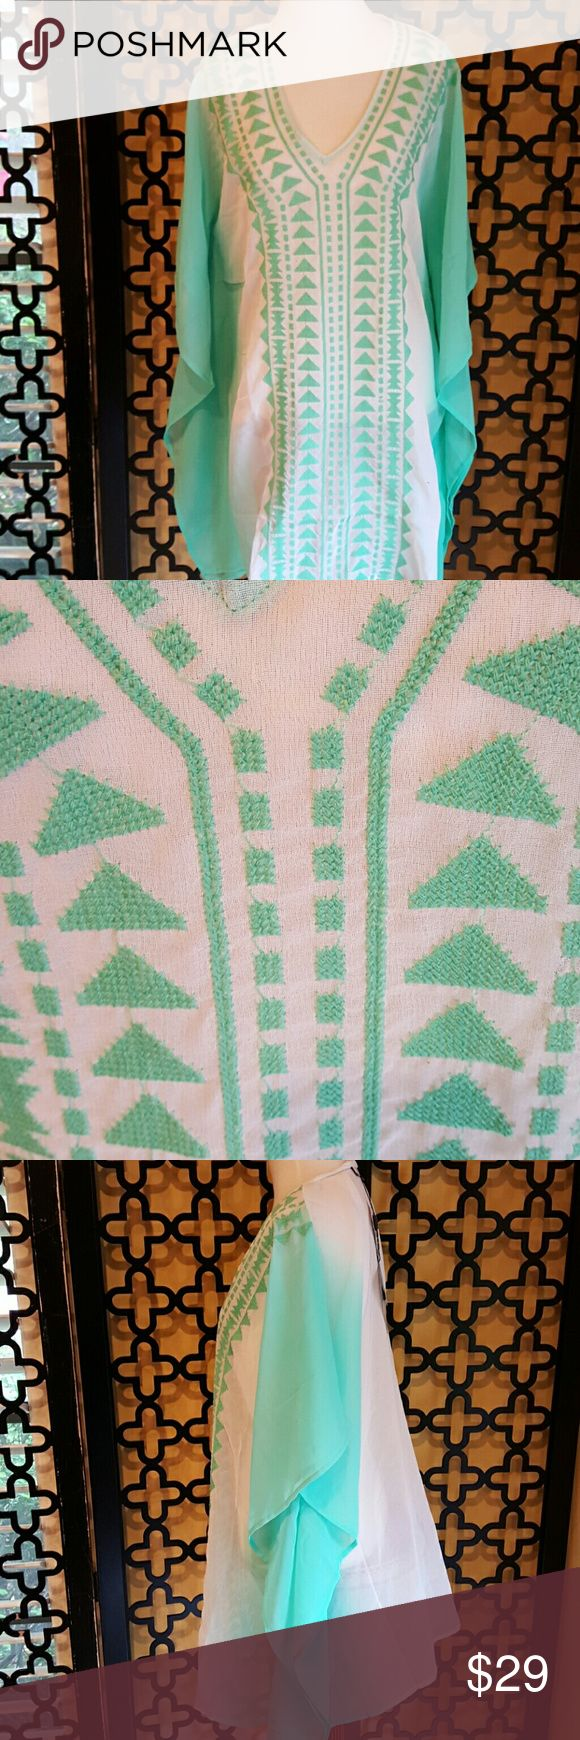 MINT INDIE COVERUP TUNIC NWT. NO FLAWS. MEASUREMENTS: bust is 32. Length is 34 inches. Beautiful stiched pattern. I would wear with white jeans as well!! spiaggia dolce Swim Coverups